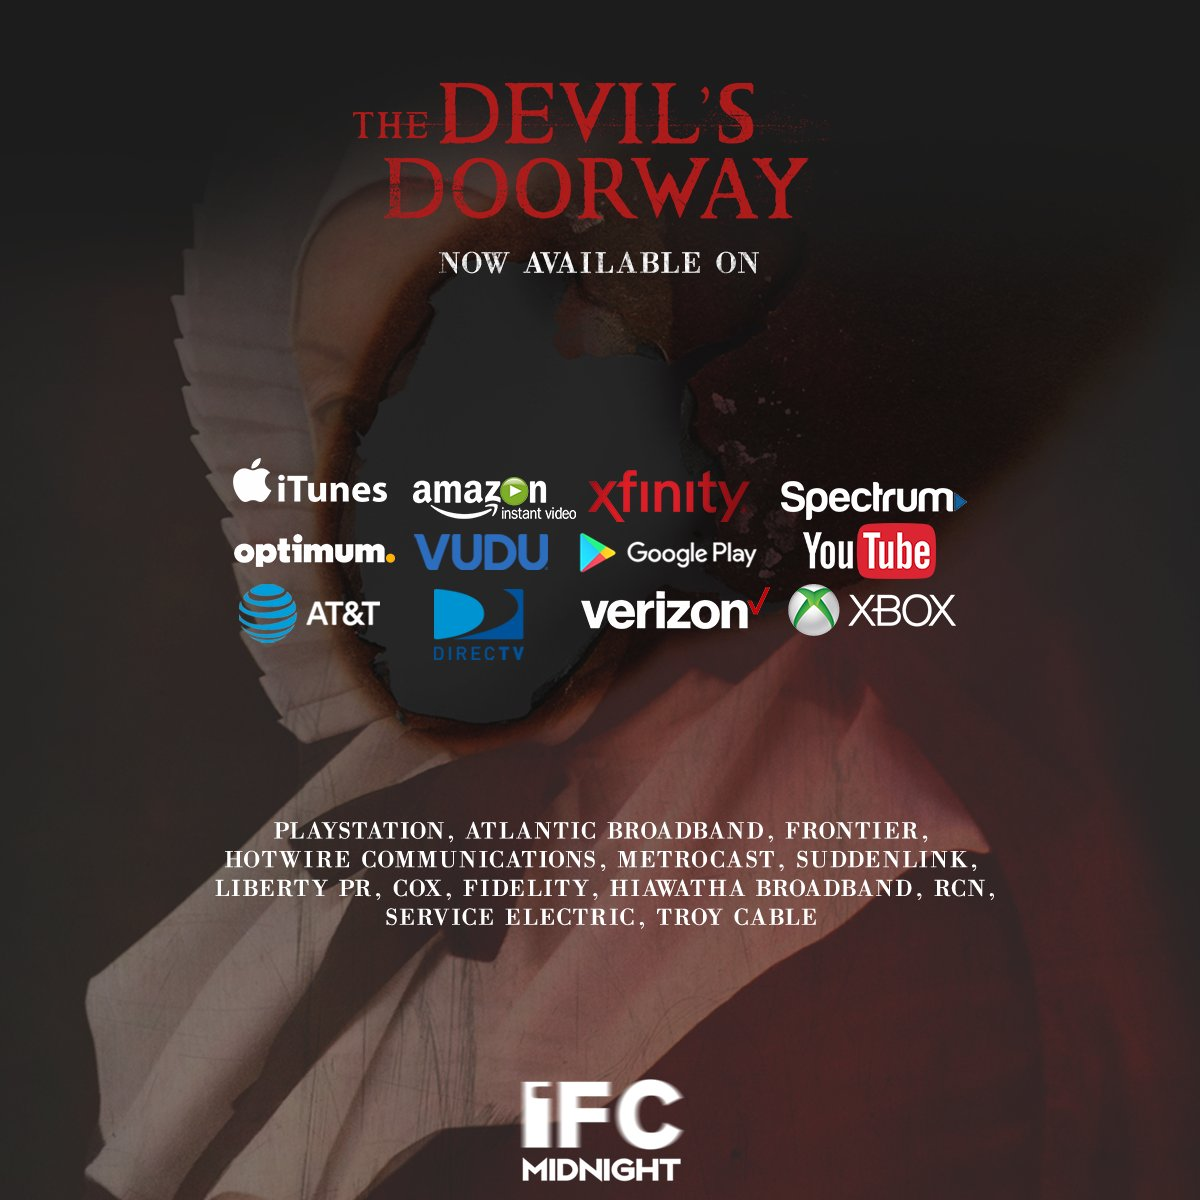 THE DEVIL'S DOORWAY is available on all thse VOD outlets now!